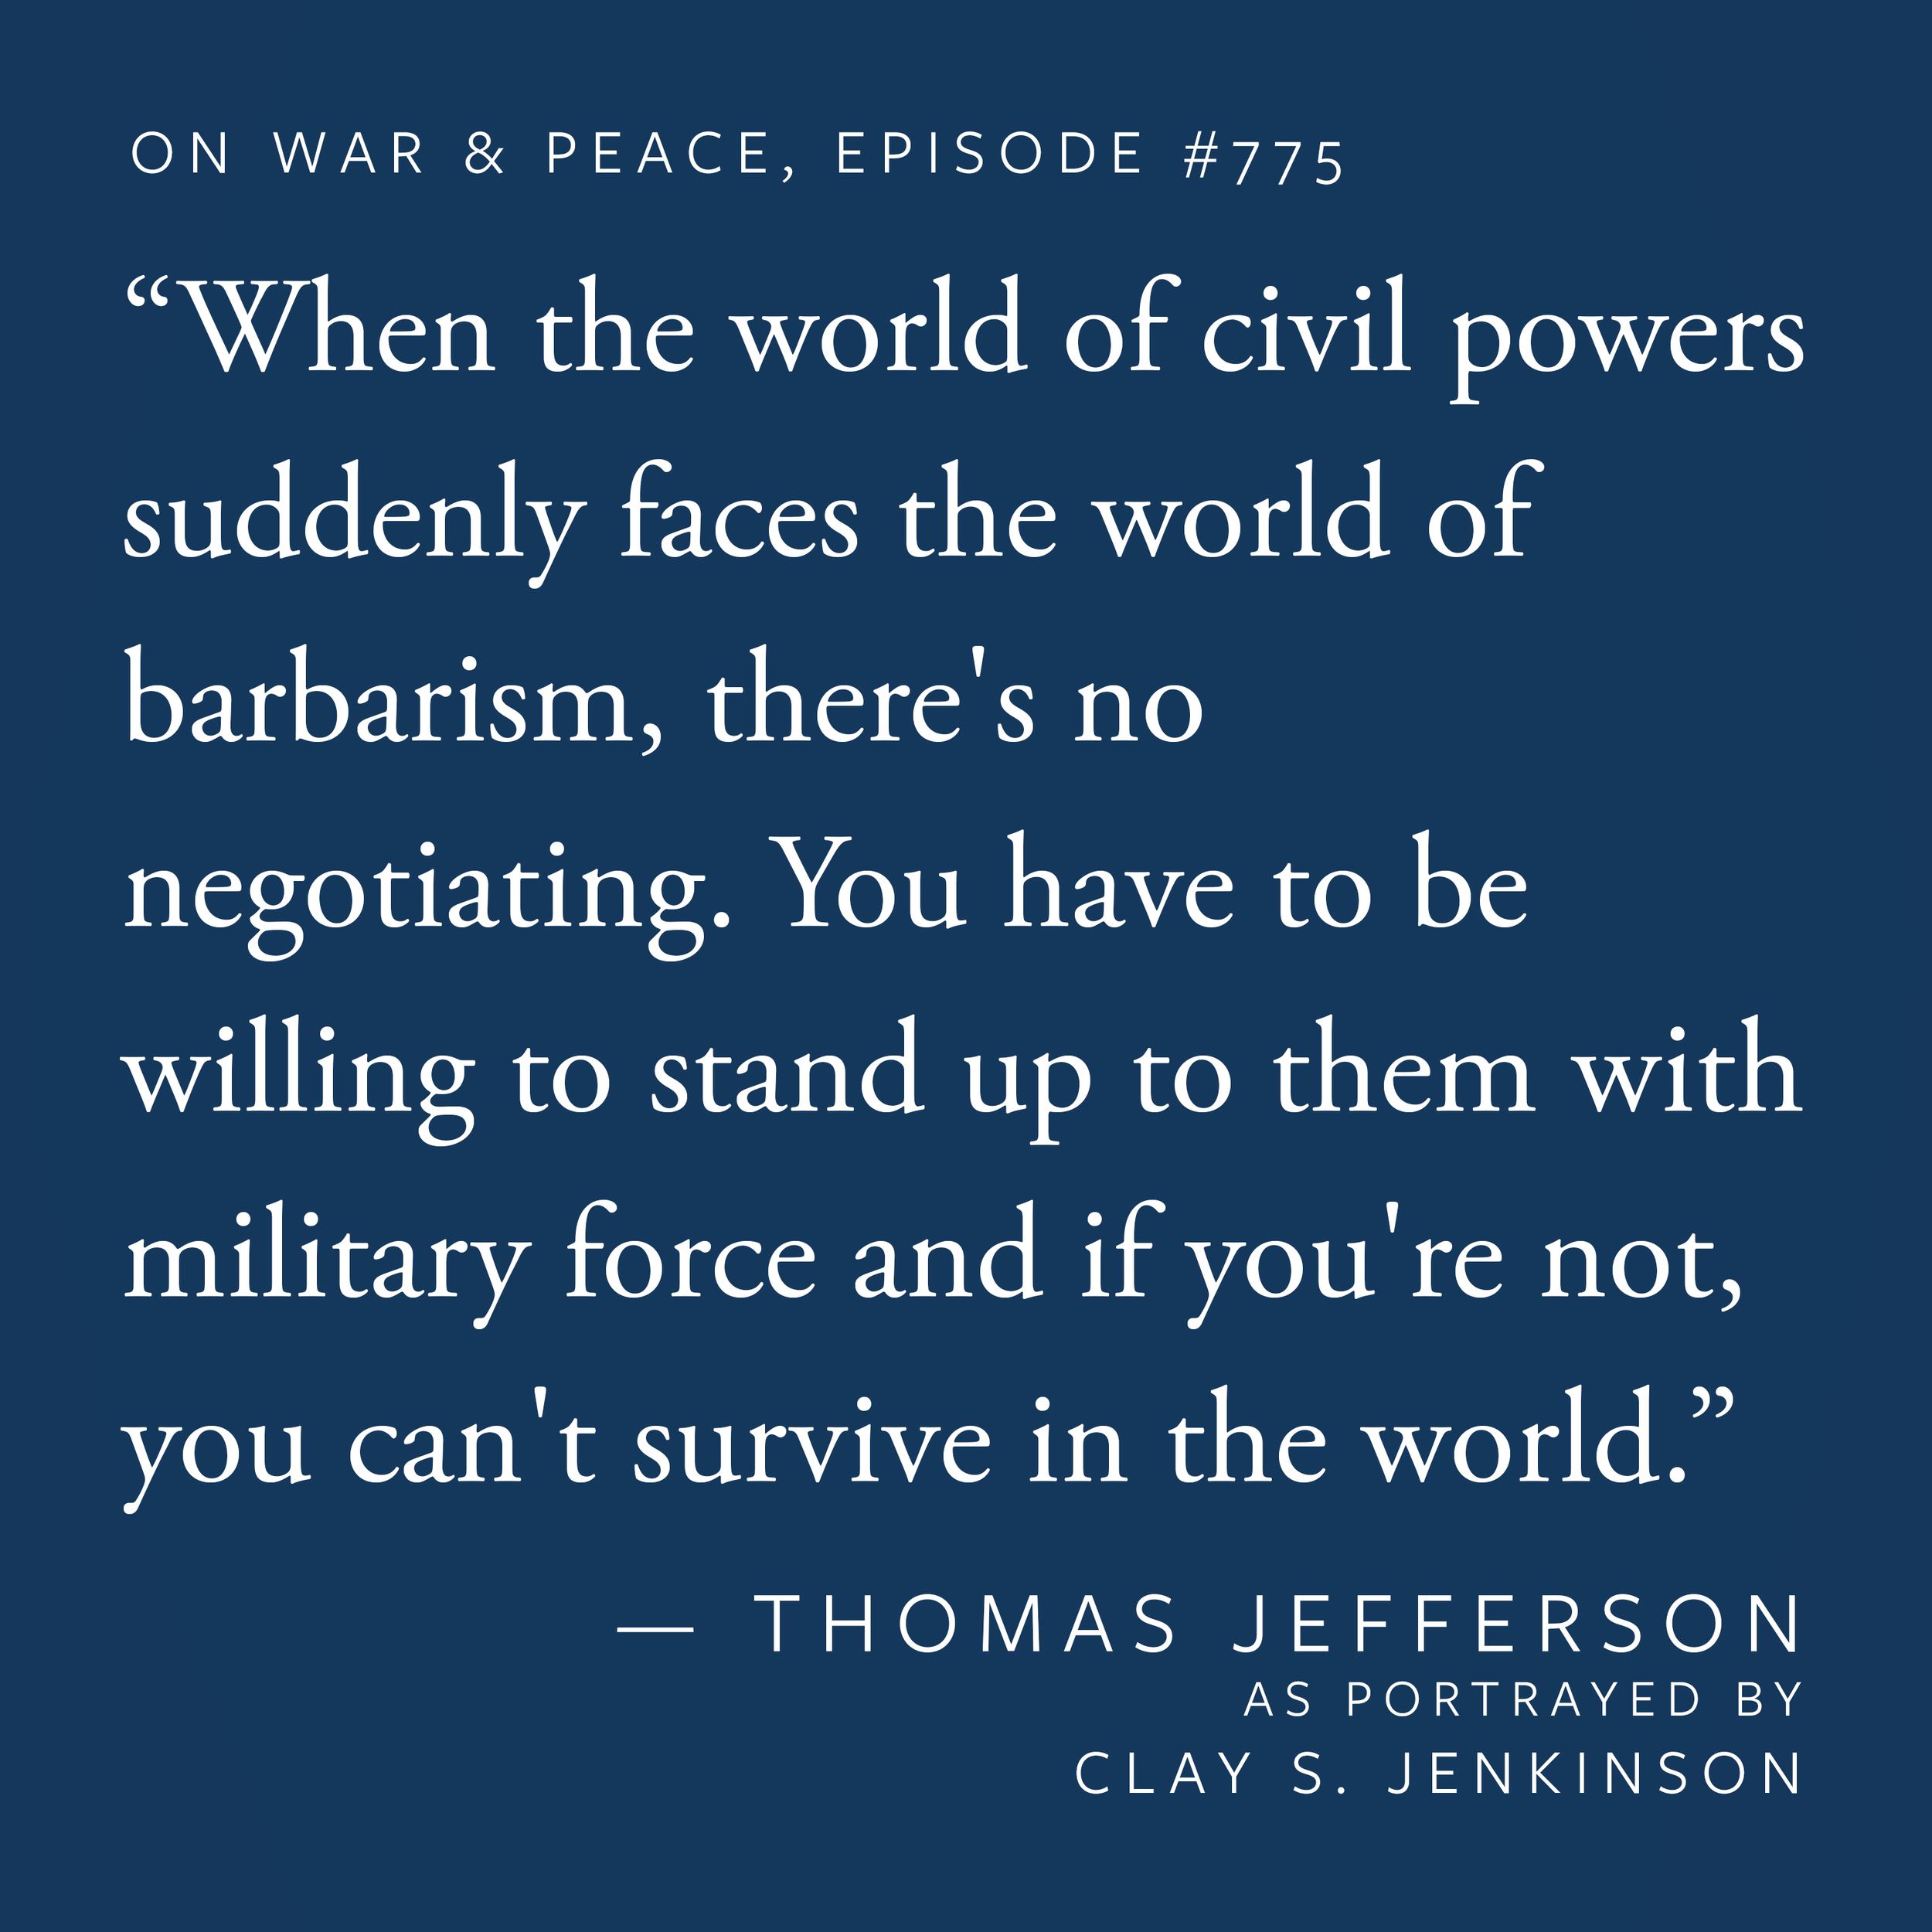 """""""When the world of civil powers suddenly faces the world of barbarism, there's no negotiating. You have to be willing to stand up to them with military force and if you're not, you can't survive in the world."""""""